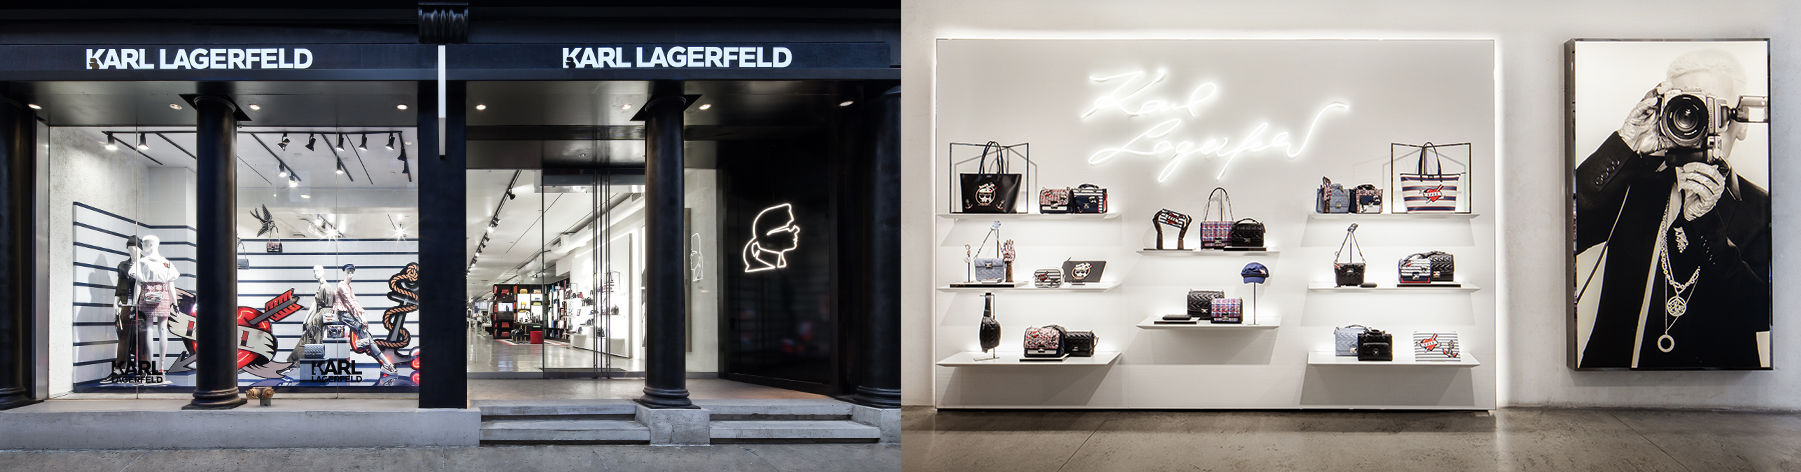 addf1295bc0 Our Stores - Karl Lagerfeld